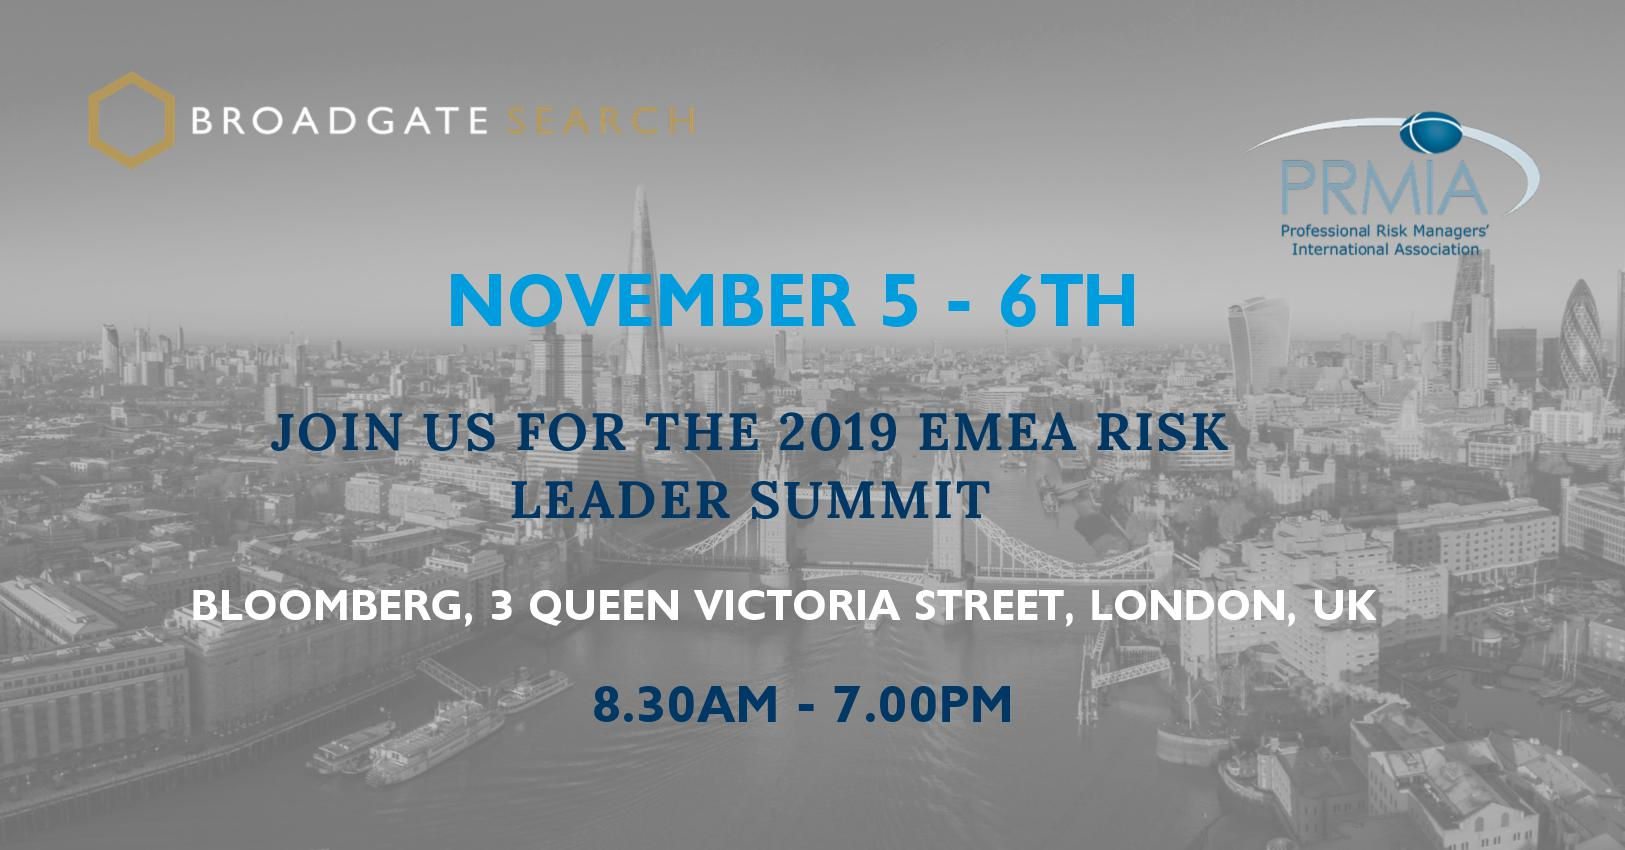 2019 EMEA Risk Leader Summit